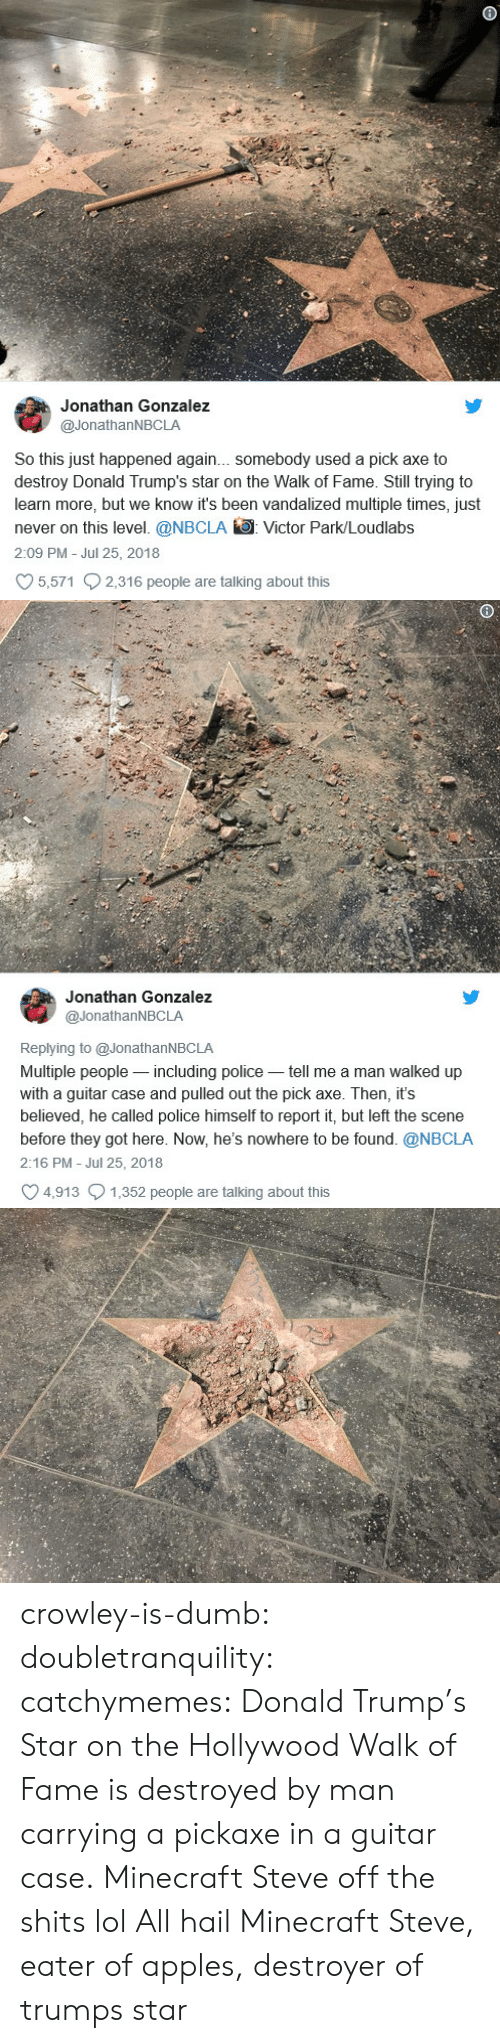 Donald Trump, Dumb, and Lol: Jonathan Gonzalez  @JonathanNBCLA  So this just happened again... somebody used a pick axe to  destroy Donald Trump's star on the Walk of Fame. Still trying to  learn more, but we know it's been vandalized multiple times, just  never on this level. @NBCLA Victor Park/Loudlabs  2:09 PM Jul 25, 2018  5,571 2,316 people are talking about this   Jonathan Gonzalez  @JonathanNBCLA  Replying to @JonathanNBCLA  Multiple people-including police tell me a man walked up  with a guitar case and pulled out the pick axe. Then, it's  believed, he called police himself to report it, but left the scene  before they got here. Now, he's nowhere to be found. @NBCLA  2:16 PM - Jul 25, 2018  4,913 1,352 people are talking about this crowley-is-dumb:  doubletranquility: catchymemes:  Donald Trump's Star on the Hollywood Walk of Fame is destroyed by man carrying a pickaxe in a guitar case.  Minecraft Steve off the shits lol   All hail Minecraft Steve, eater of apples, destroyer of trumps star